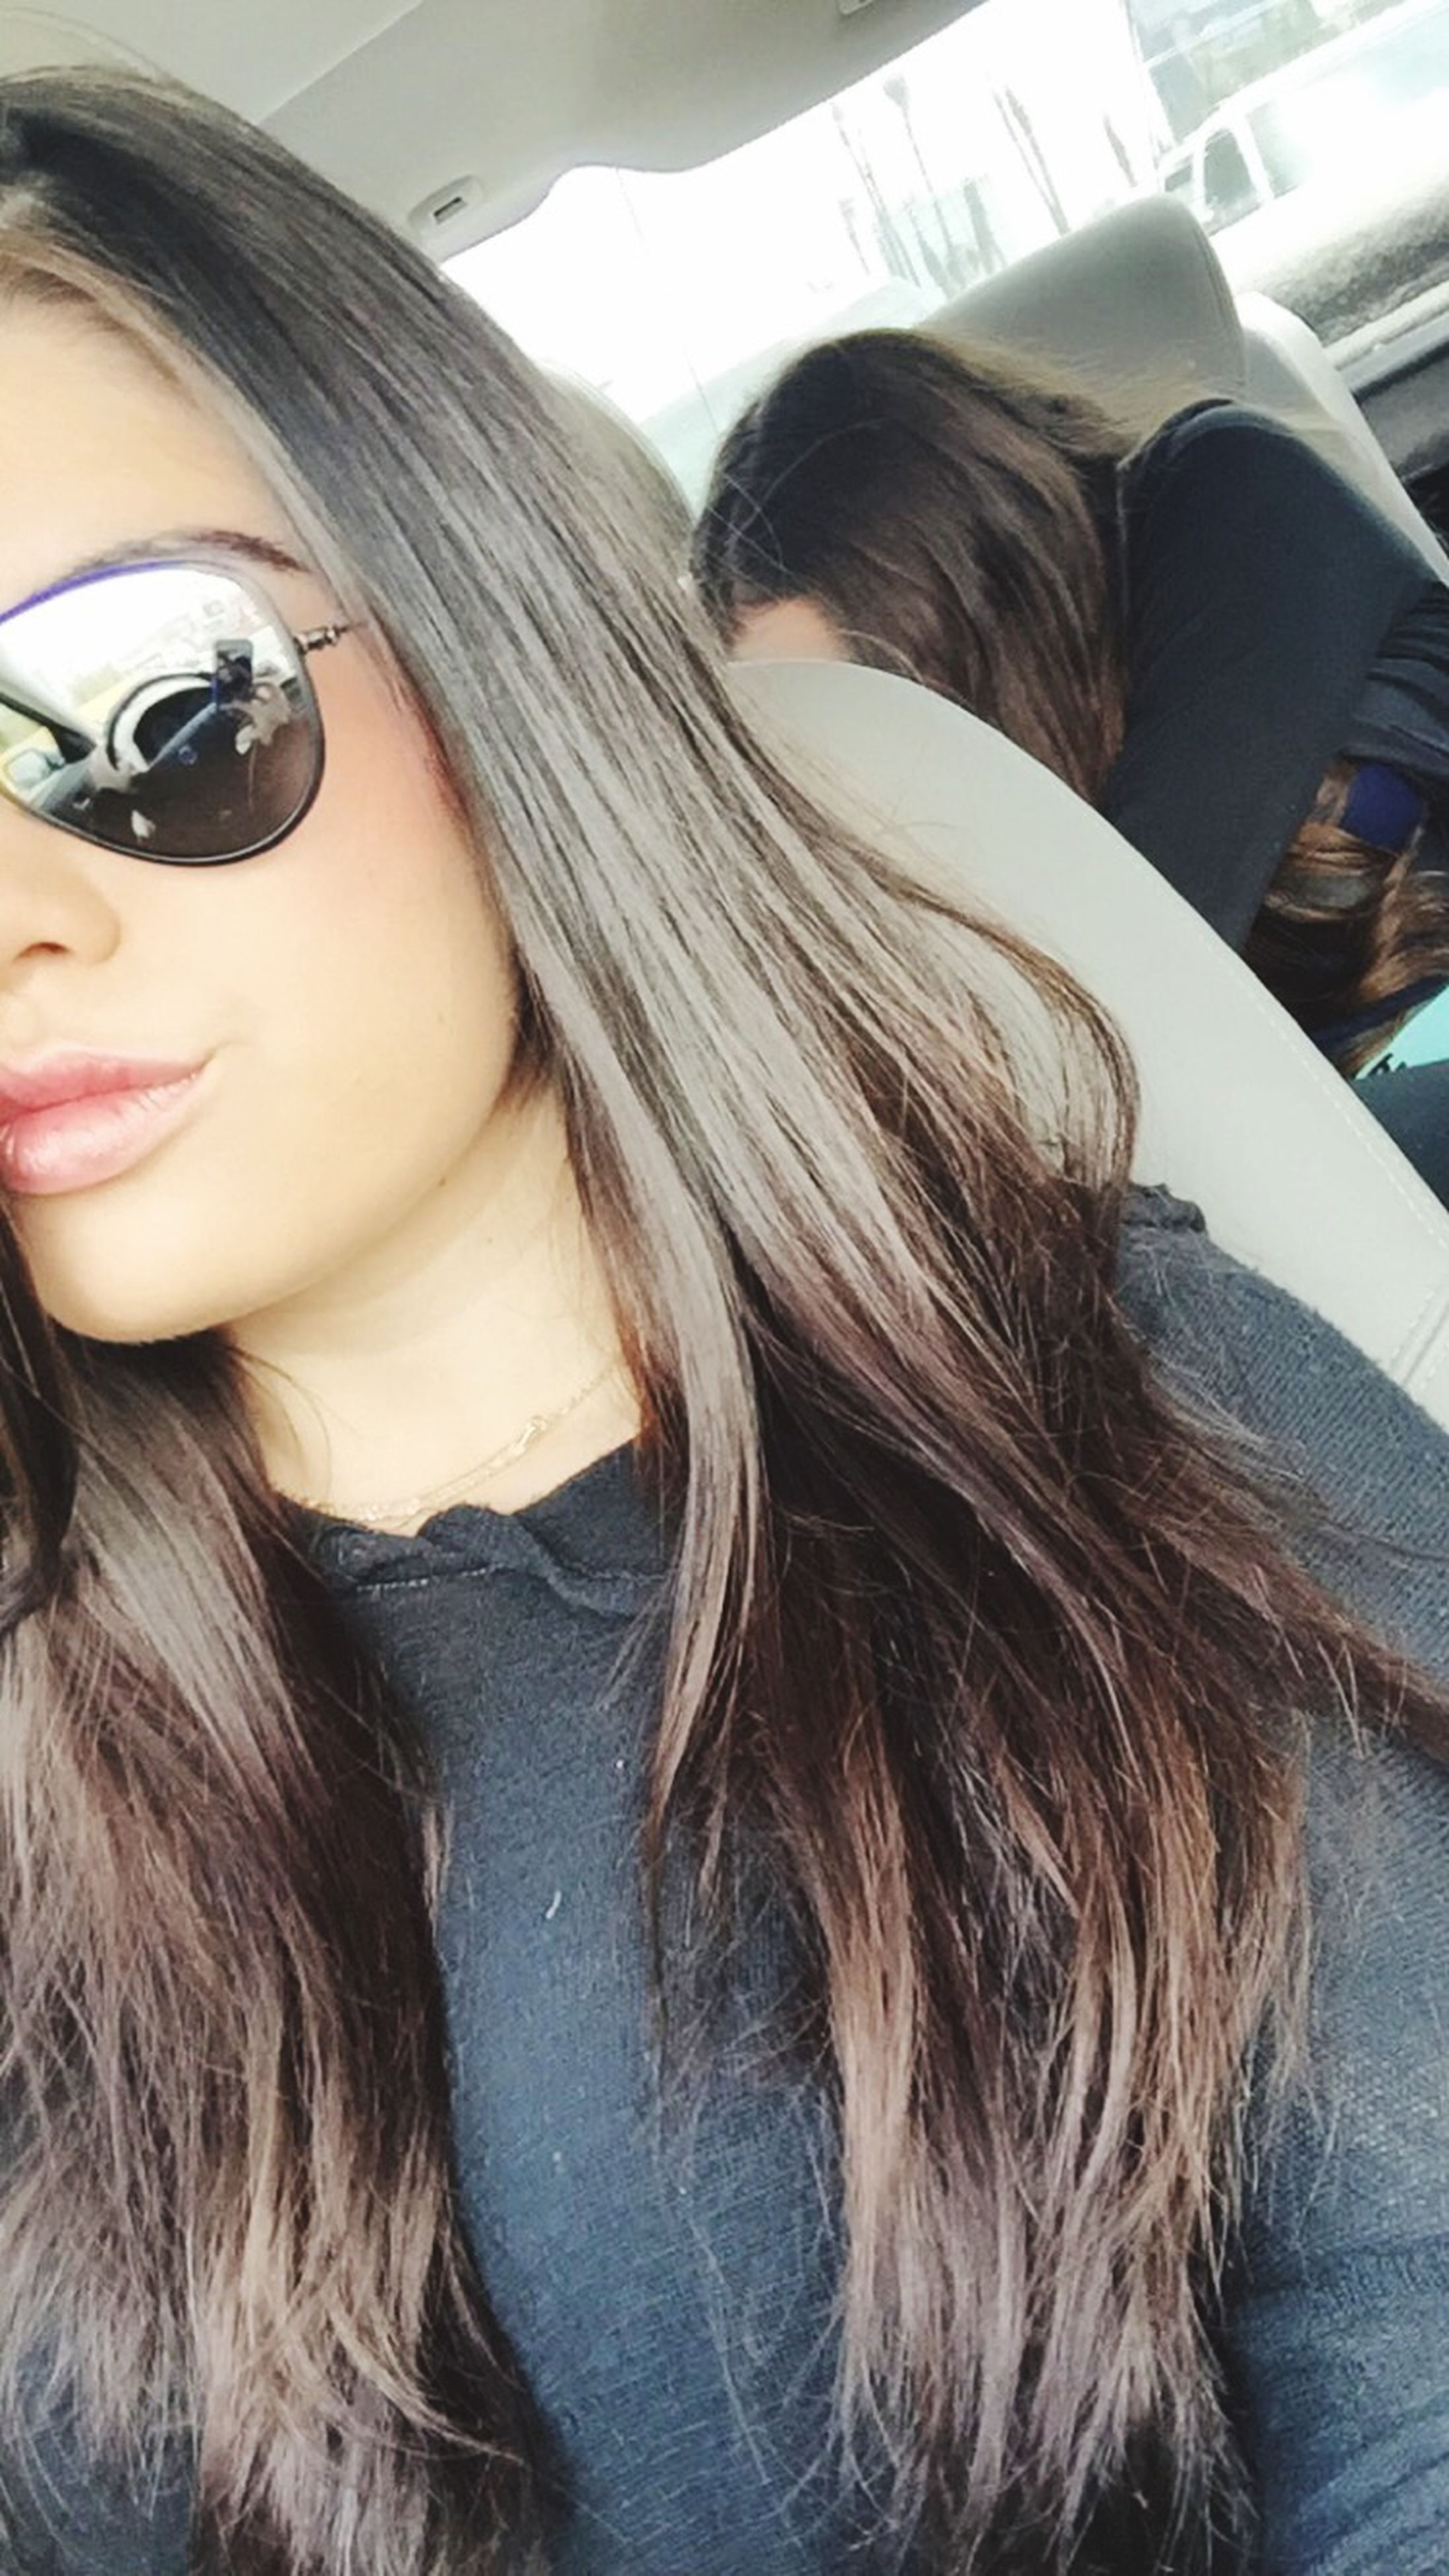 young adult, young women, person, lifestyles, long hair, headshot, leisure activity, looking at camera, portrait, smiling, front view, sunglasses, casual clothing, black hair, indoors, blond hair, close-up